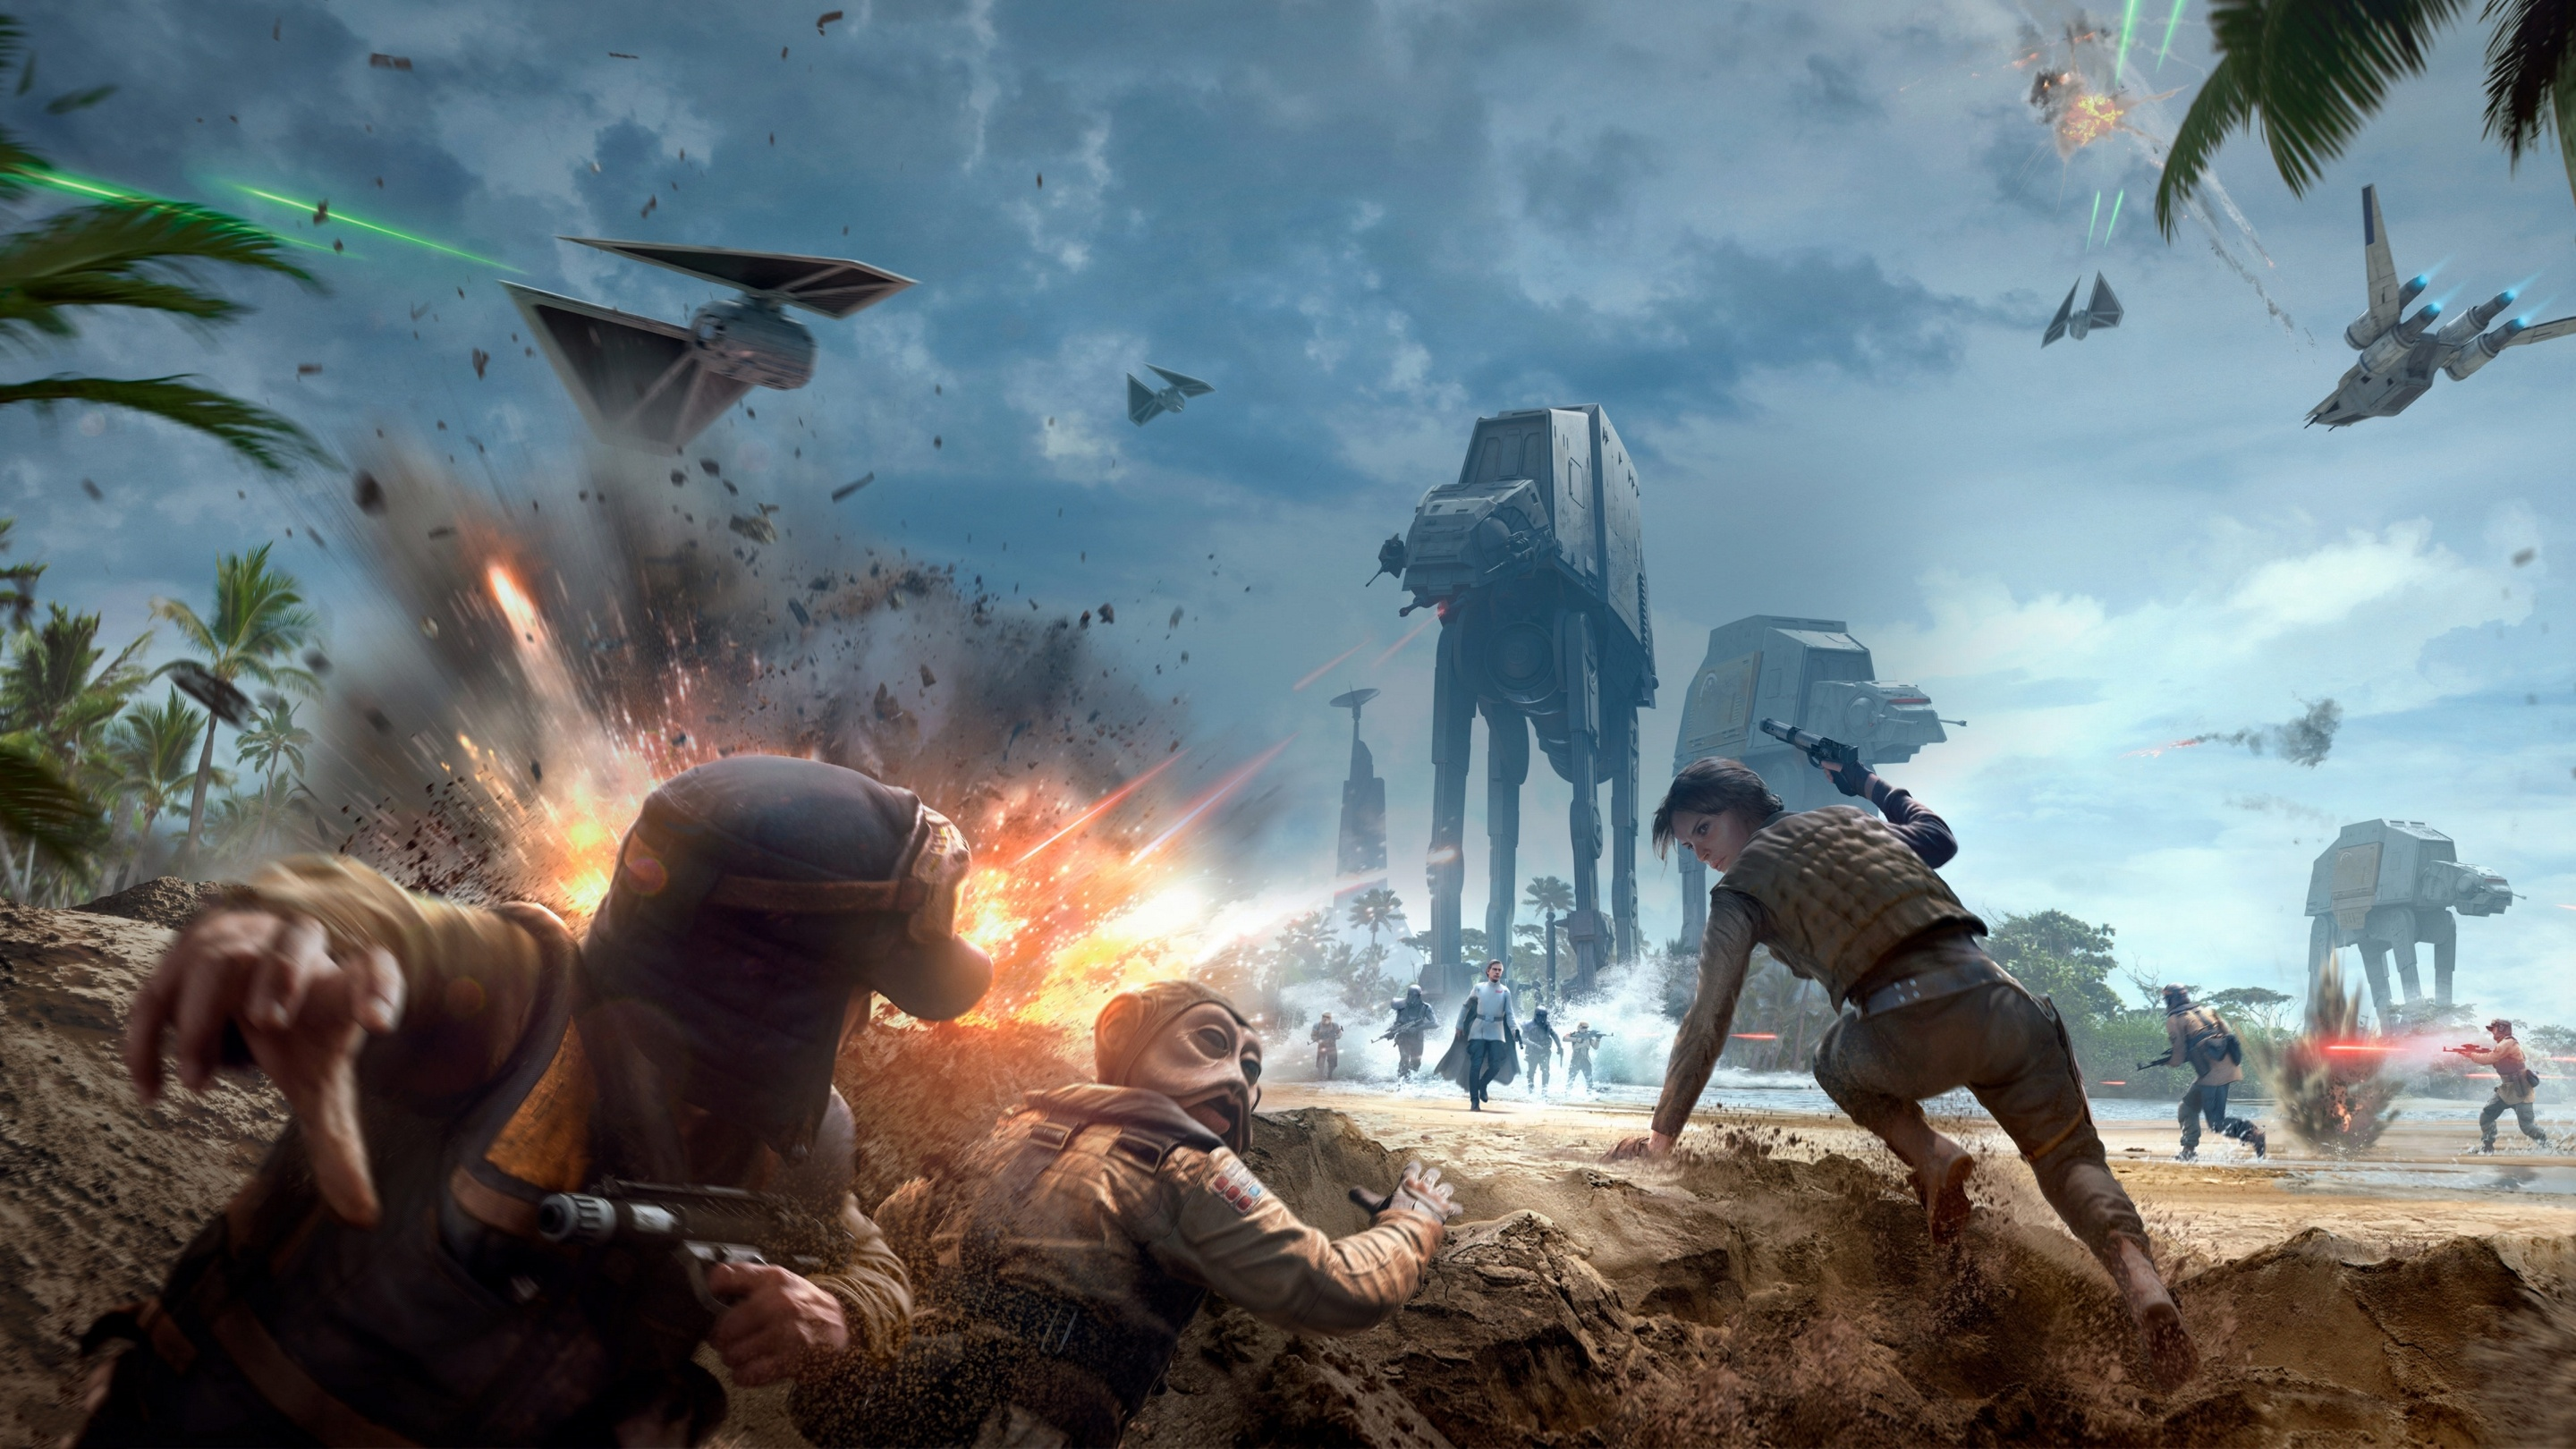 Star Wars Battlefront Rogue One Scarif Wallpapers 2880x1620 1254532